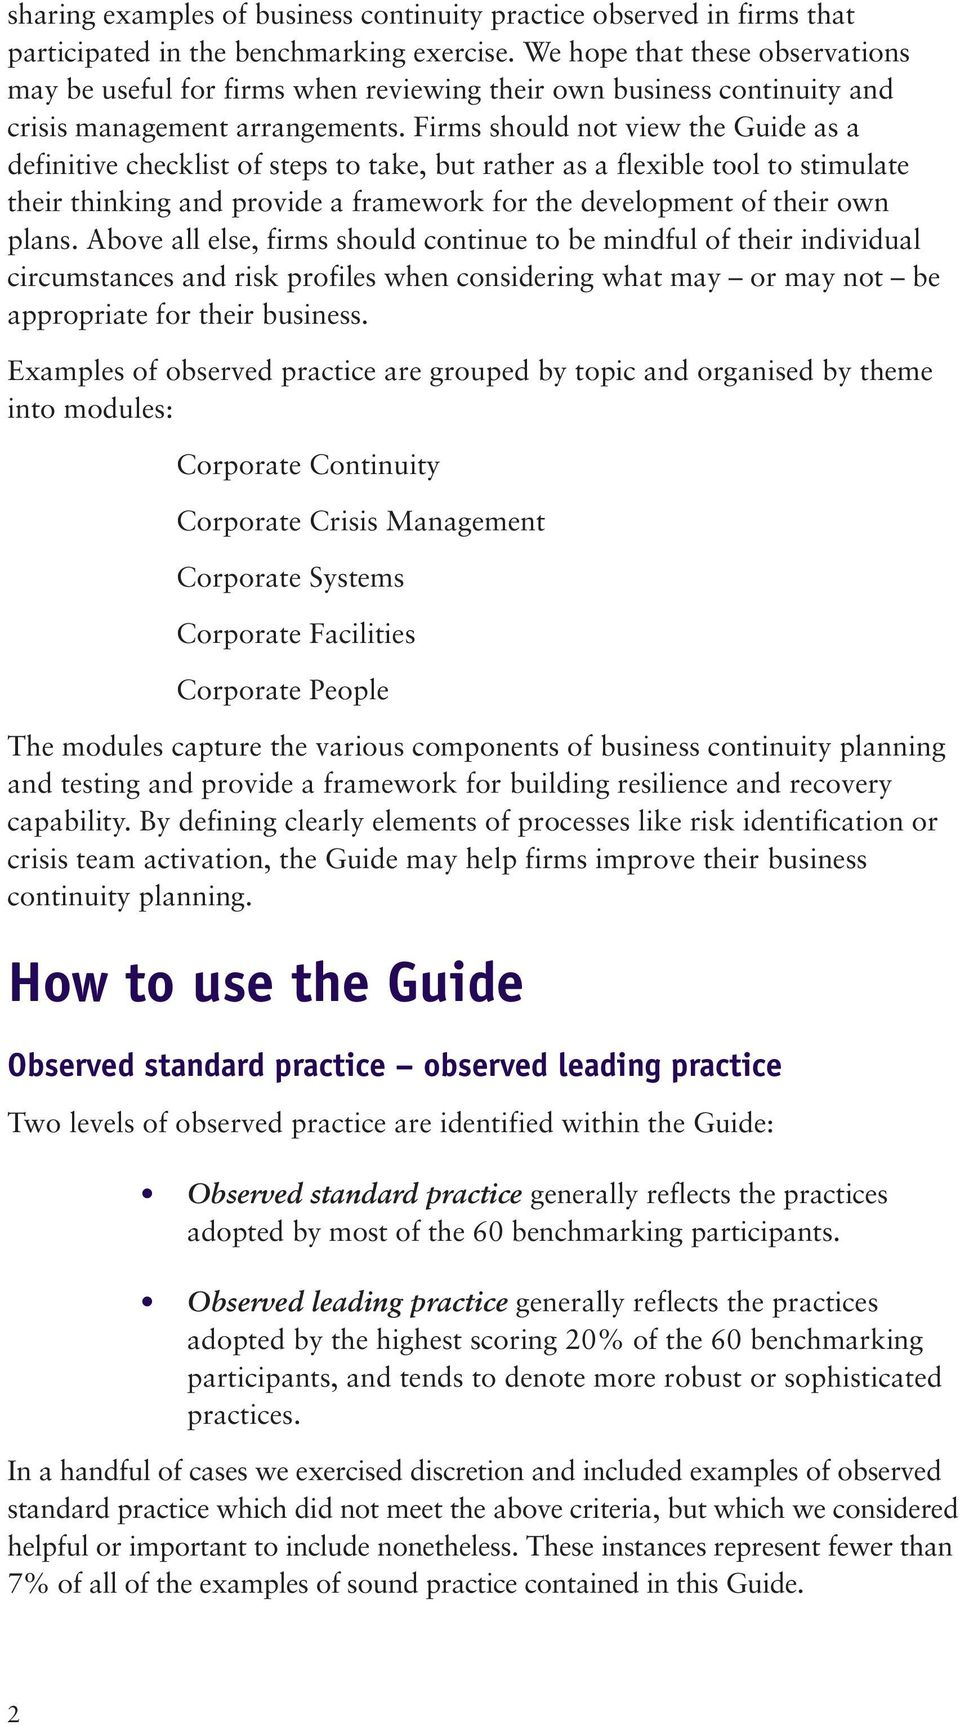 Firms should not view the Guide as a definitive checklist of steps to take, but rather as a flexible tool to stimulate their thinking and provide a framework for the development of their own plans.